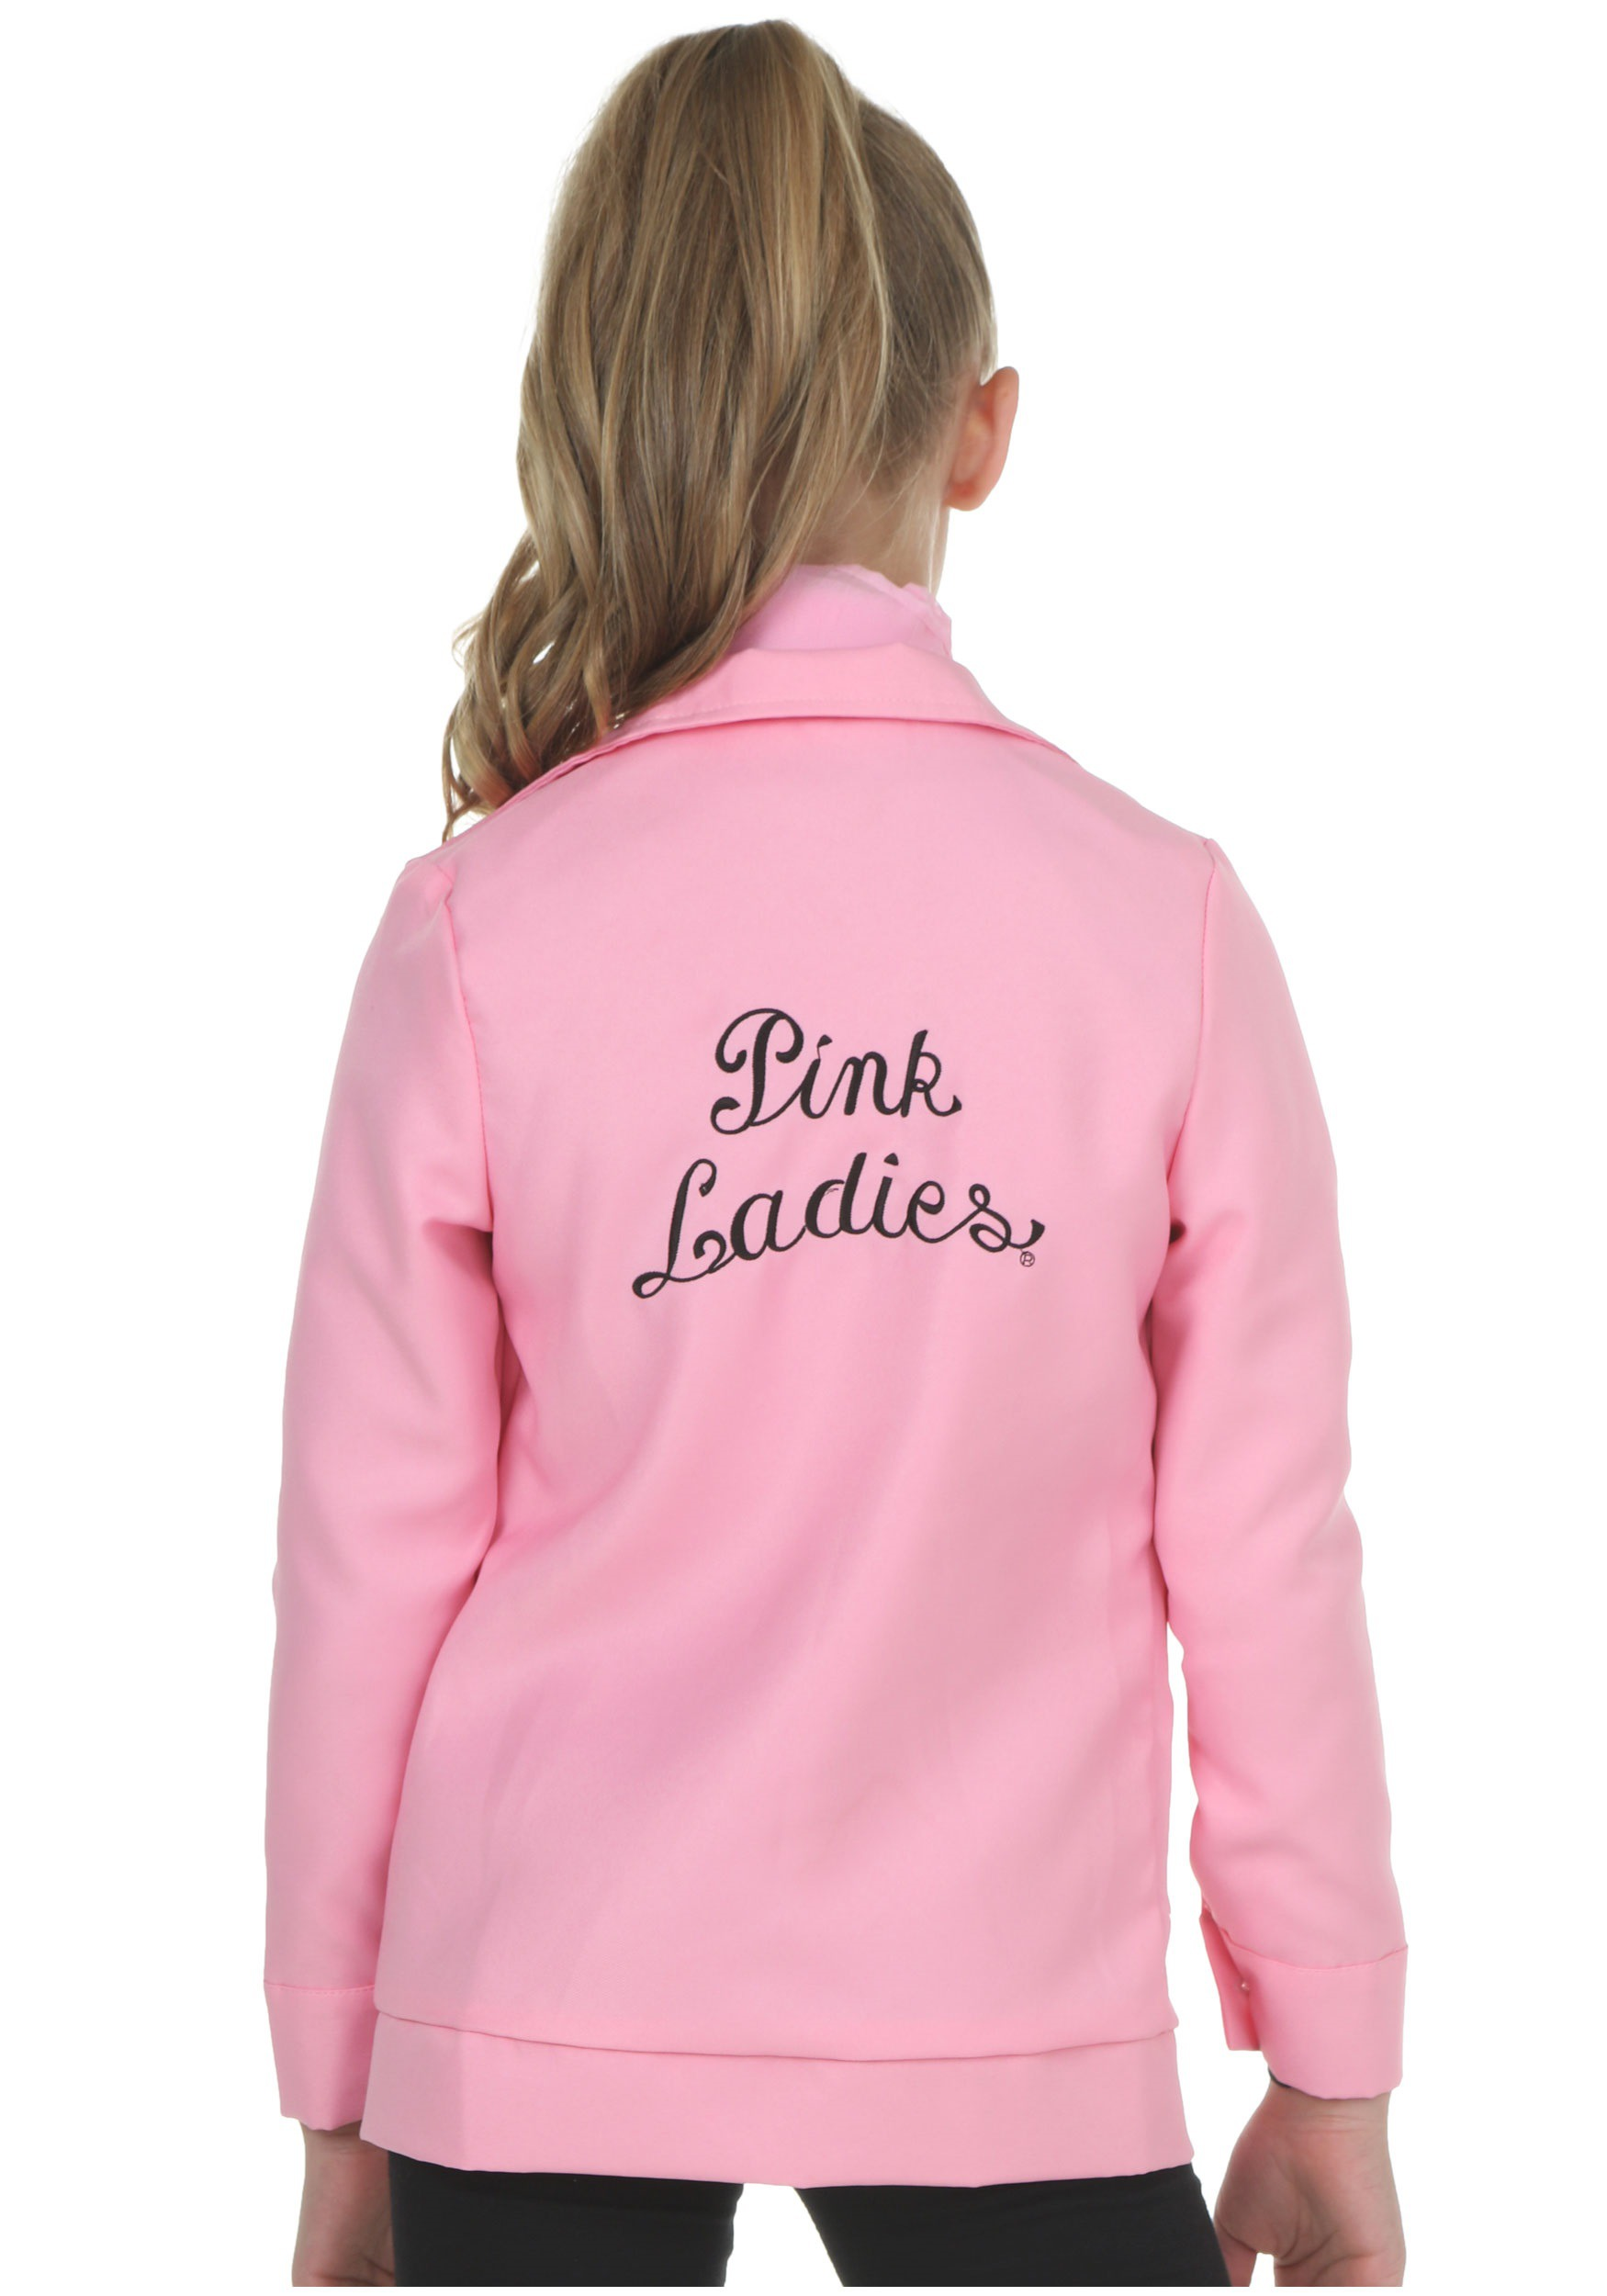 Where Can I Buy A Pink Ladies Jacket | Jackets Review